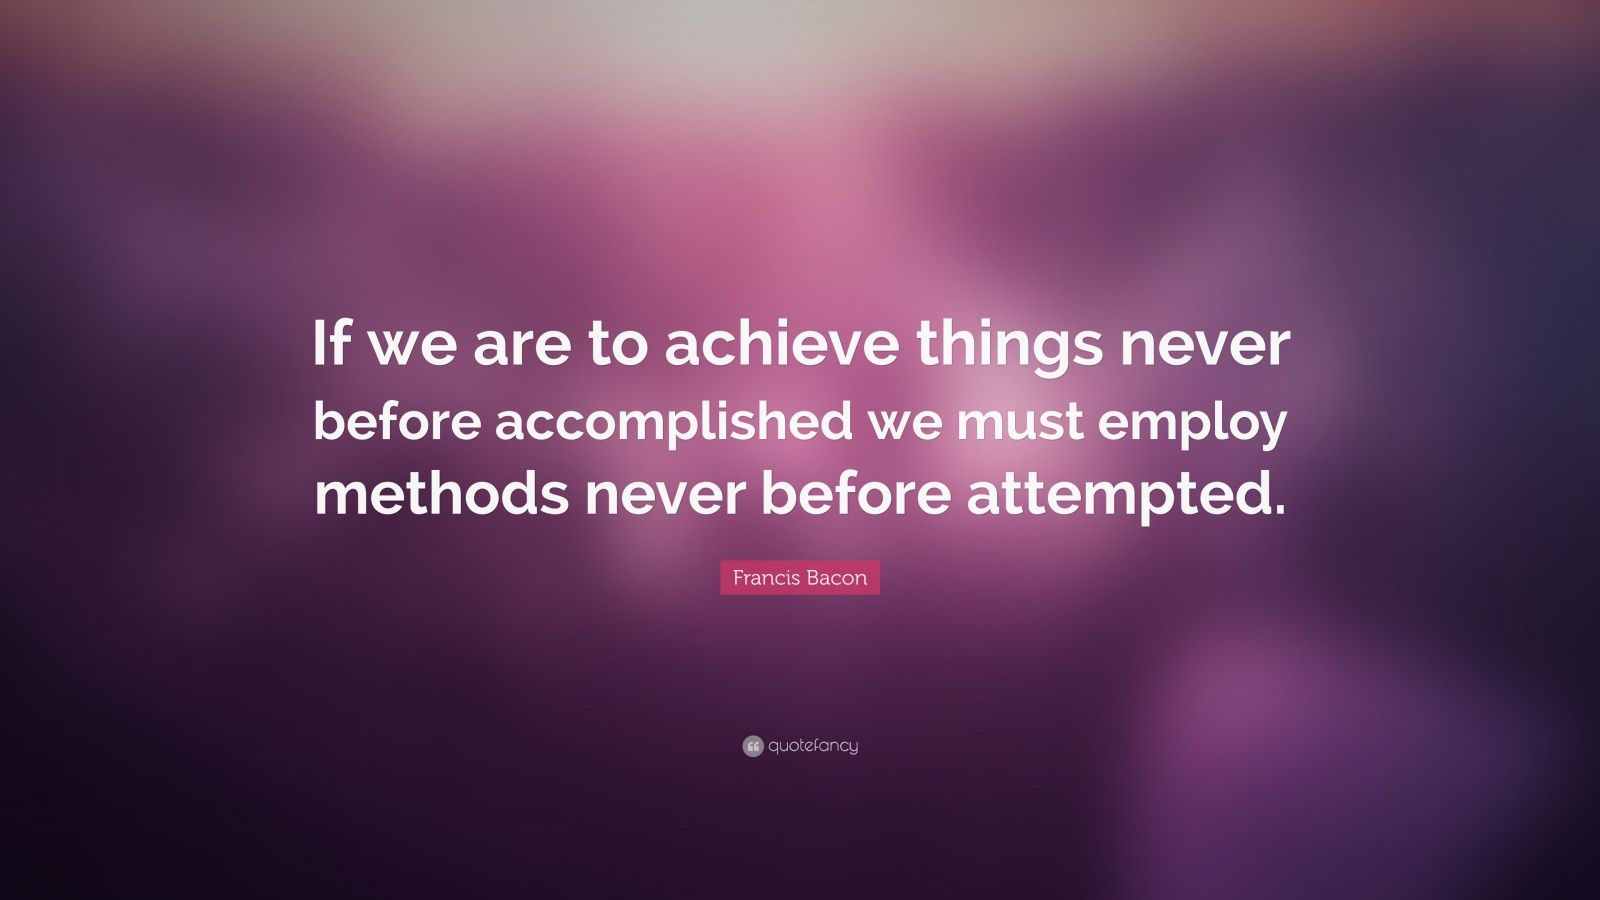 """Francis Bacon Quote: """"If we are to achieve things never before accomplished we must employ methods never before attempted."""""""